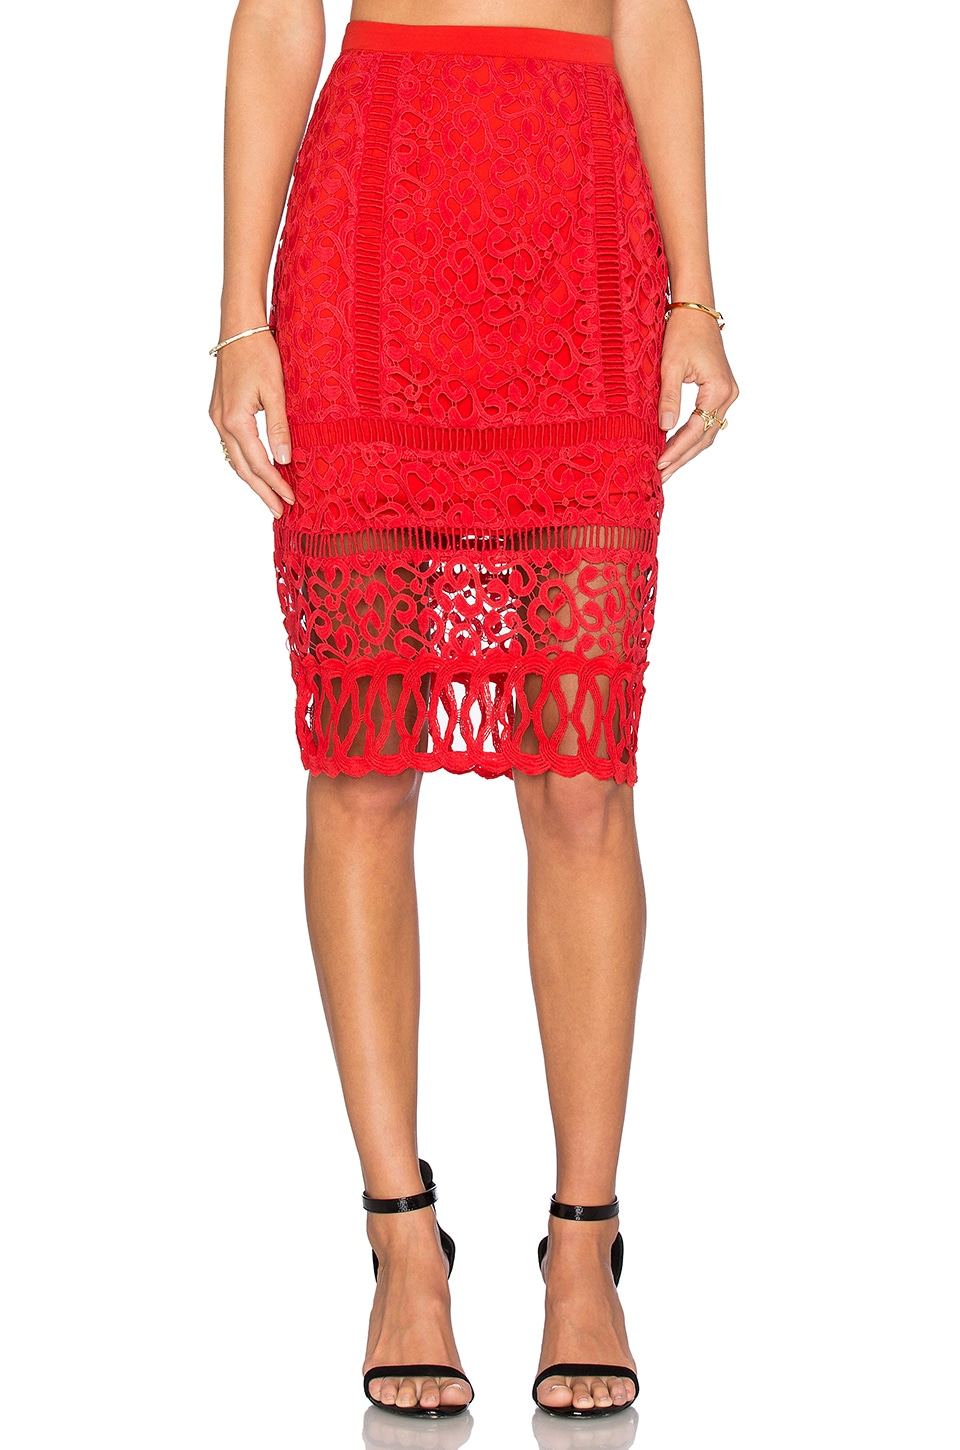 Greylin Melrose Lace Pencil Skirt in Hibiscus